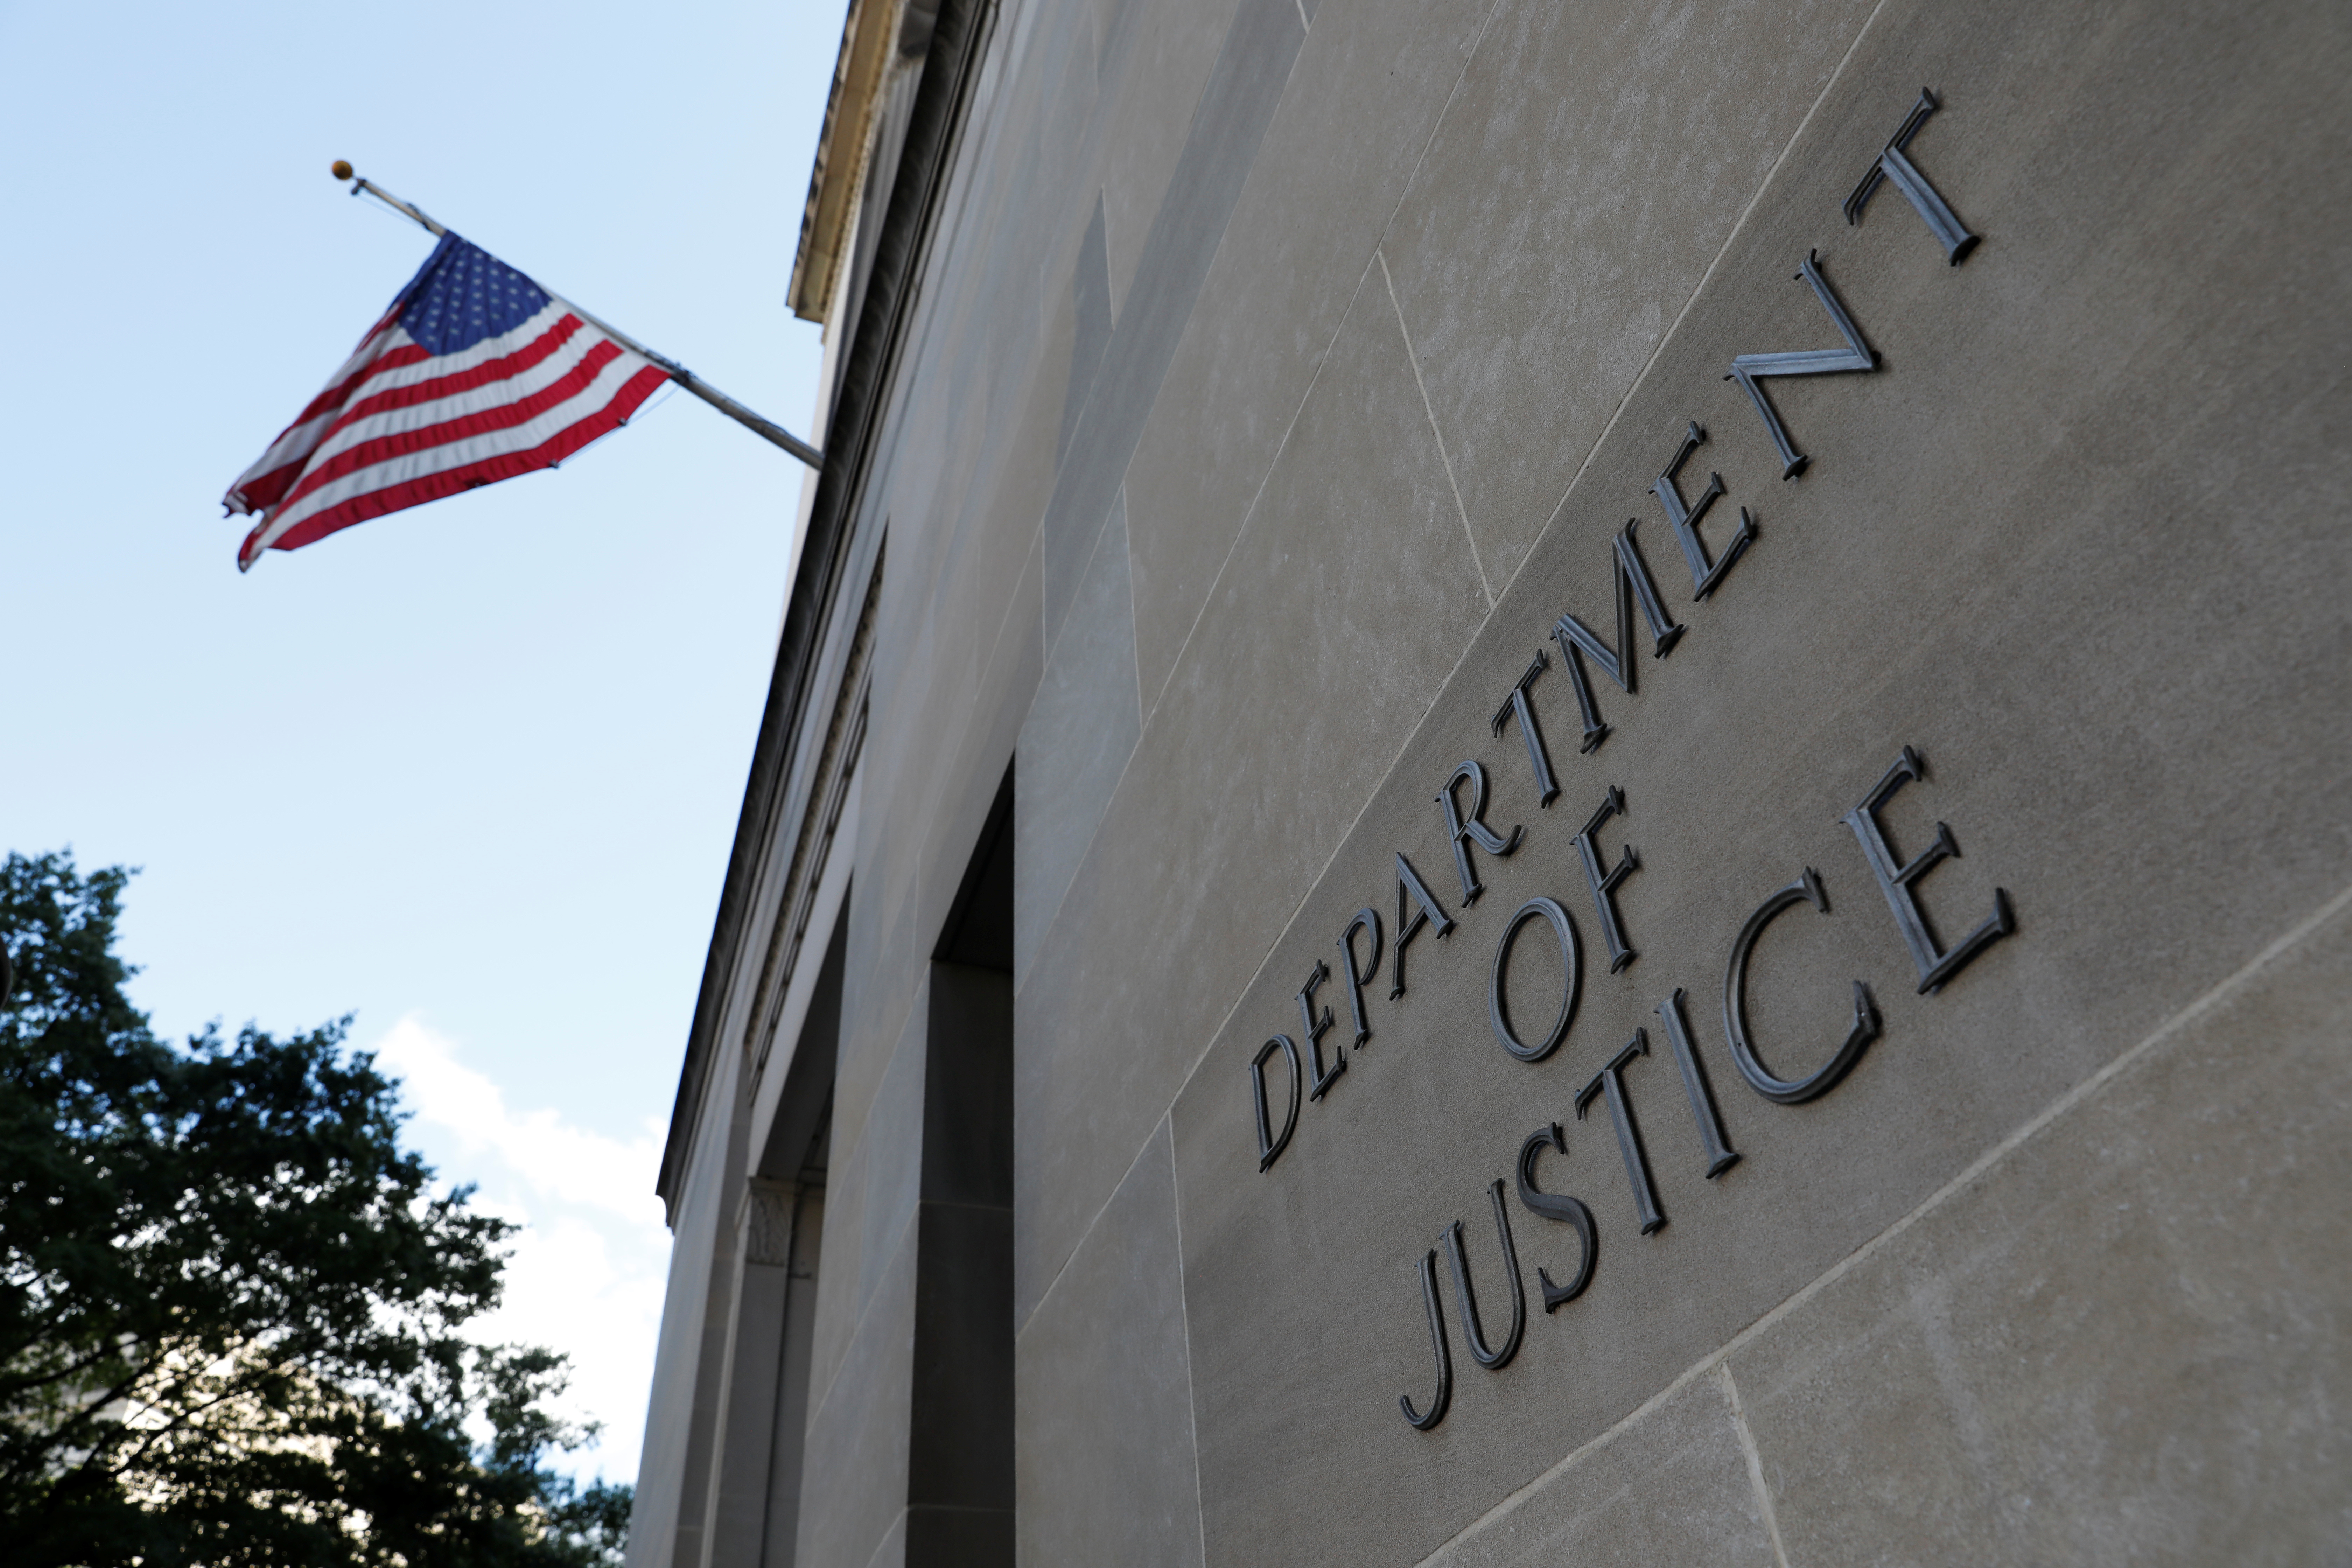 Signage is seen at the United States Department of Justice headquarters in Washington, D.C., U.S., August 29, 2020. REUTERS/Andrew Kelly